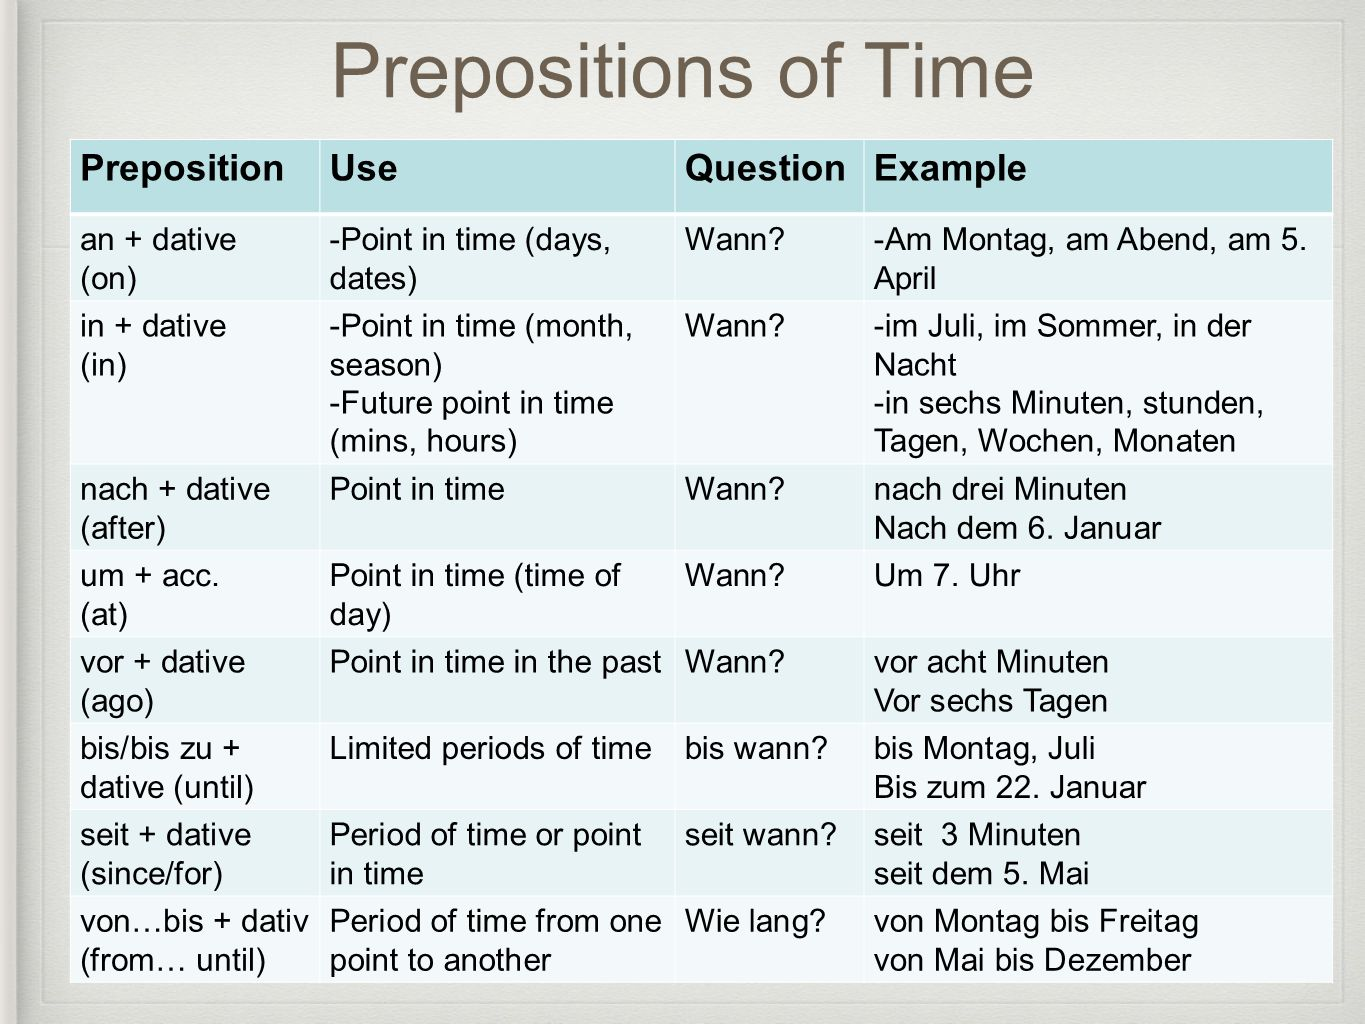 Prepositions of Time PrepositionUseQuestionExample an + dative (on) -Point in time (days, dates) Wann?-Am Montag, am Abend, am 5. April in + dative (i